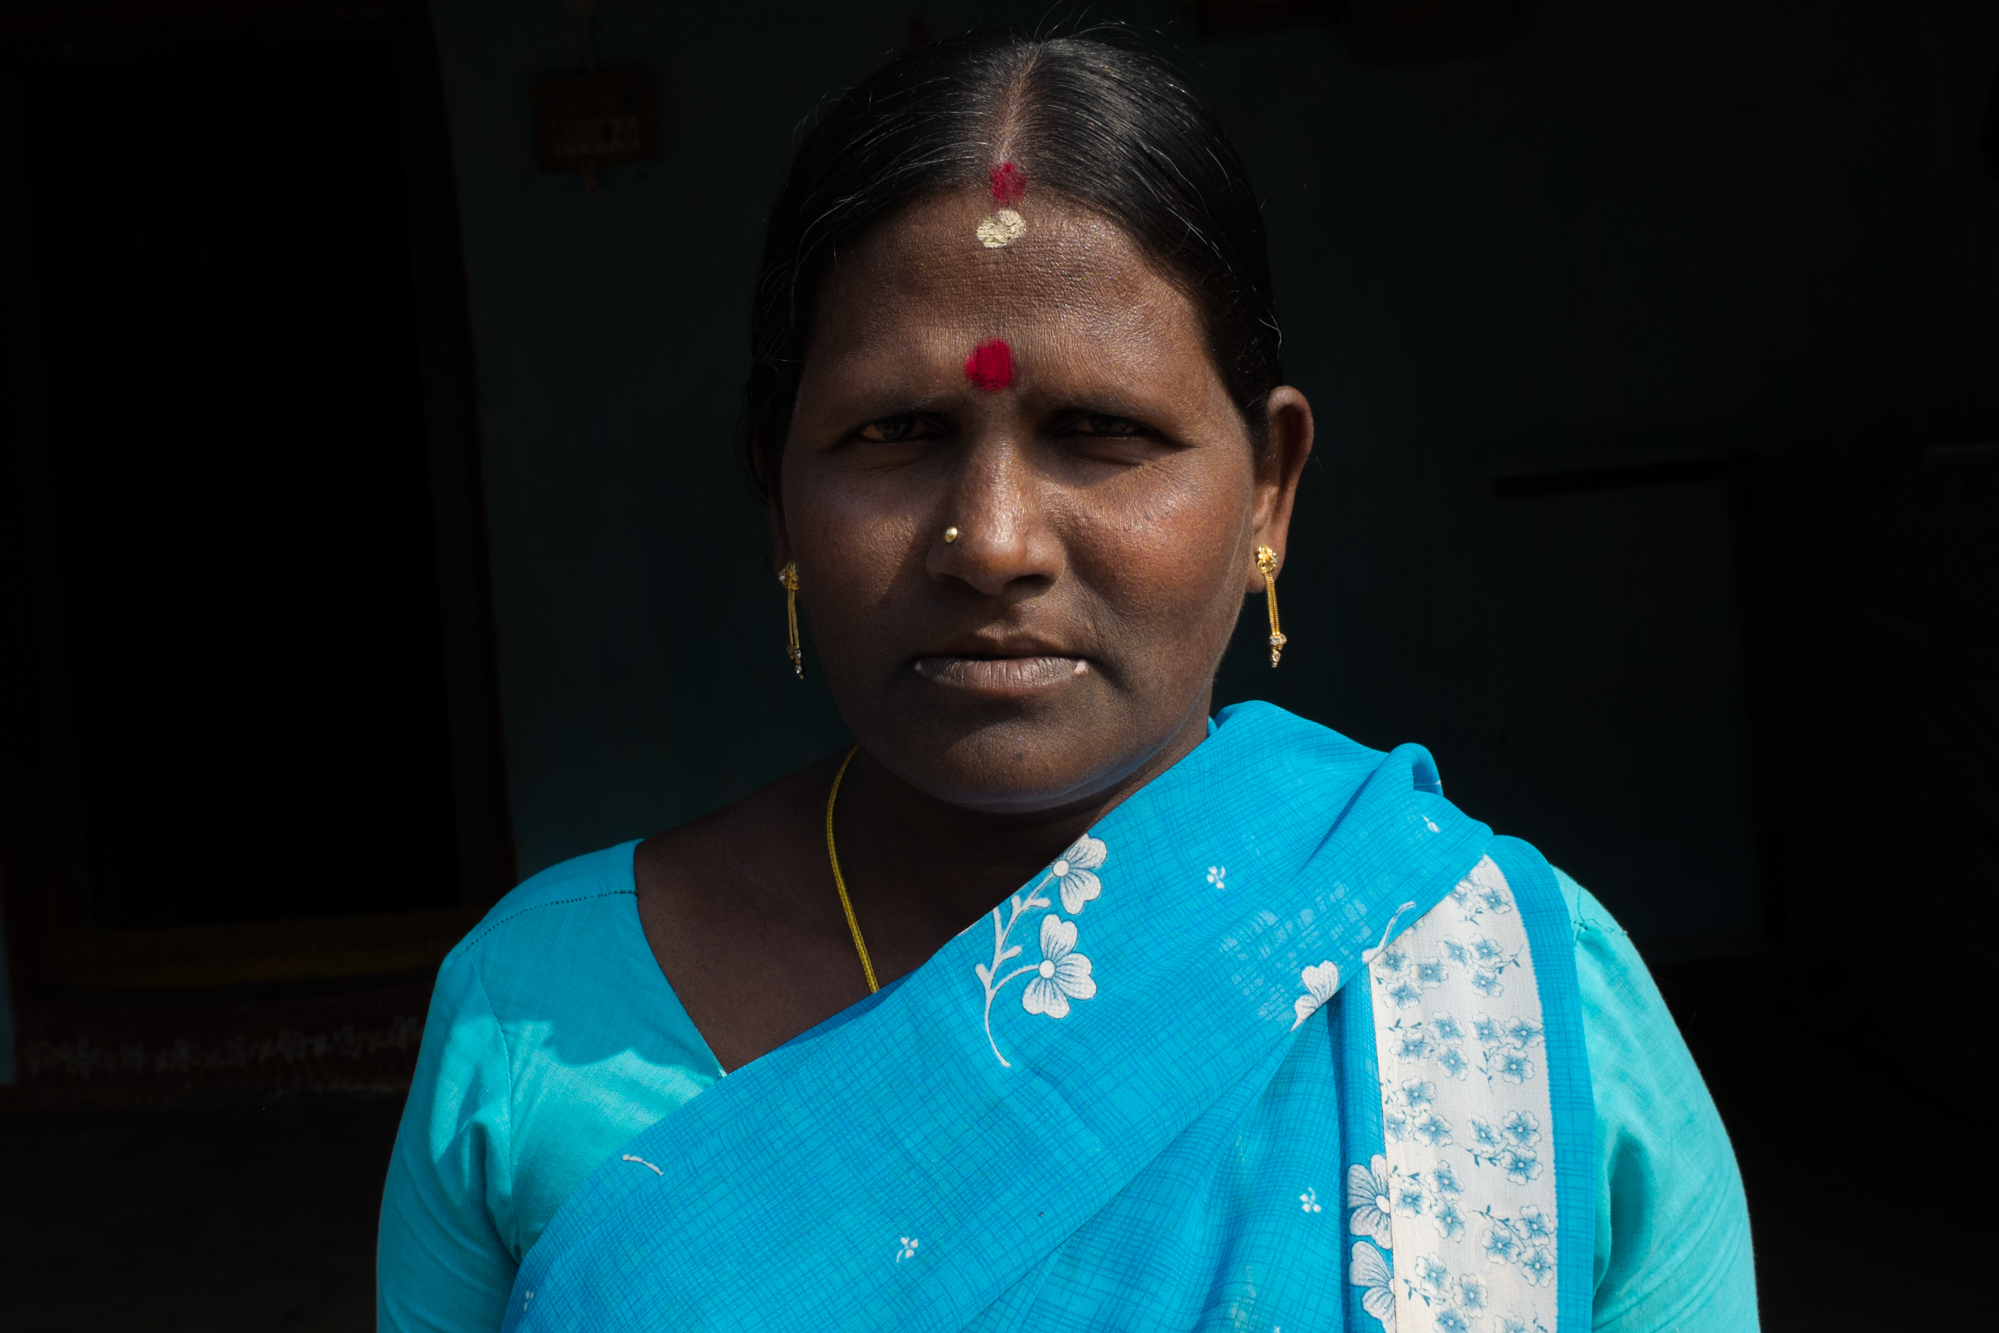 Hemavathi, 45 of Balliputugga, AP, India